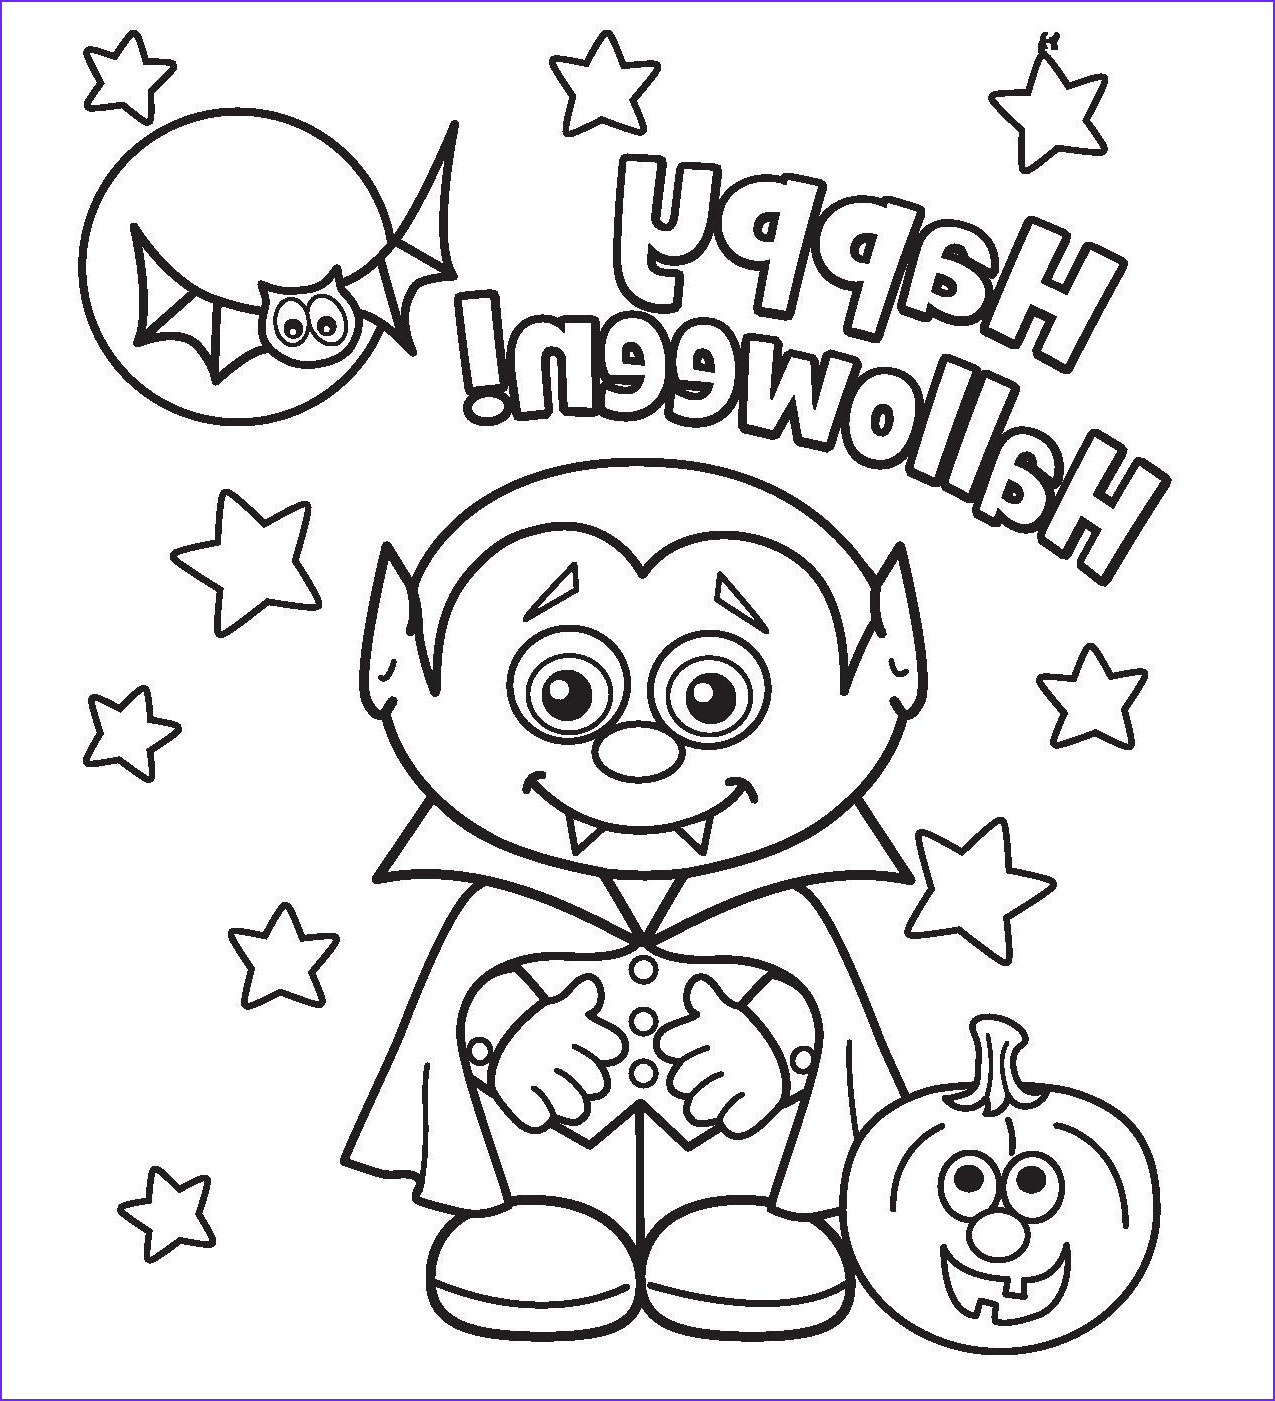 Halloween Adult Coloring Book Best Of Stock Halloween Coloring Pages to Honor the Spirit Of This Scary